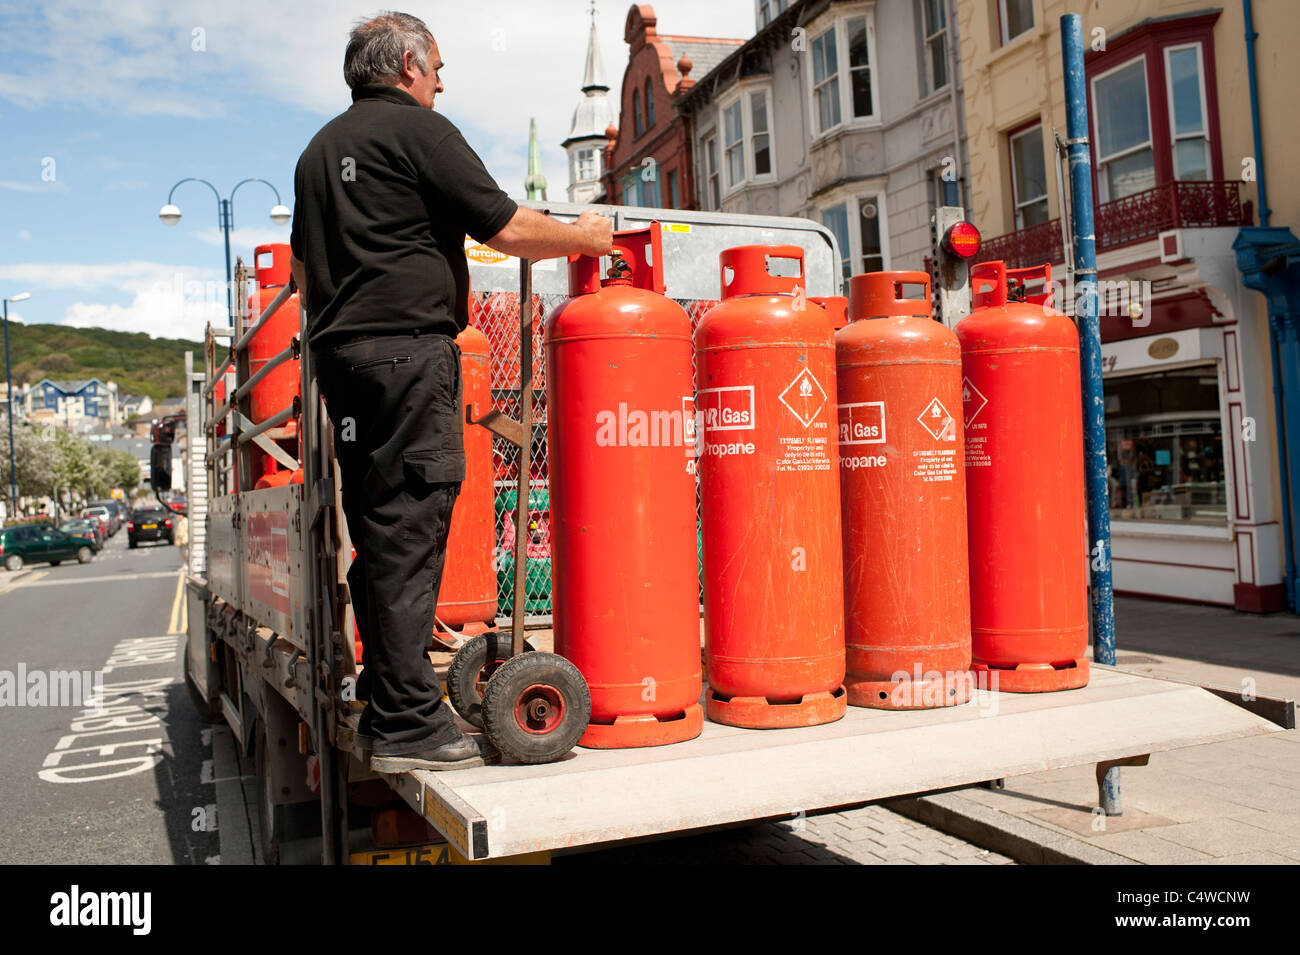 A man with a delivery of orange coloured Calor propane gas bottles cylinders, UK - Stock Image